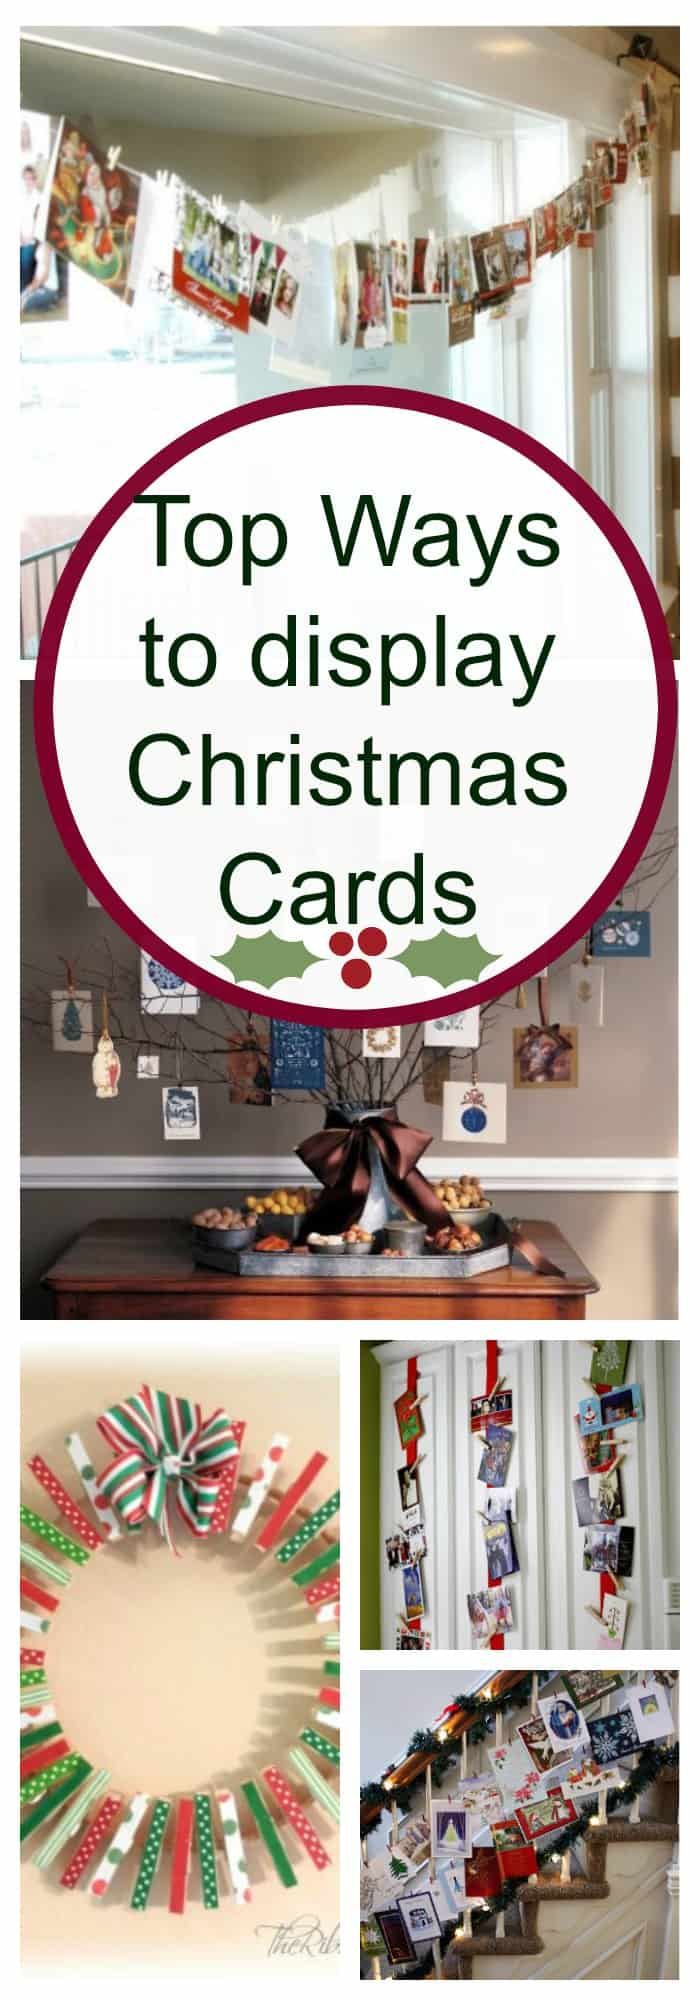 Ways To Read Tarot Cards: 5 Creative Ways To Display Christmas Cards With